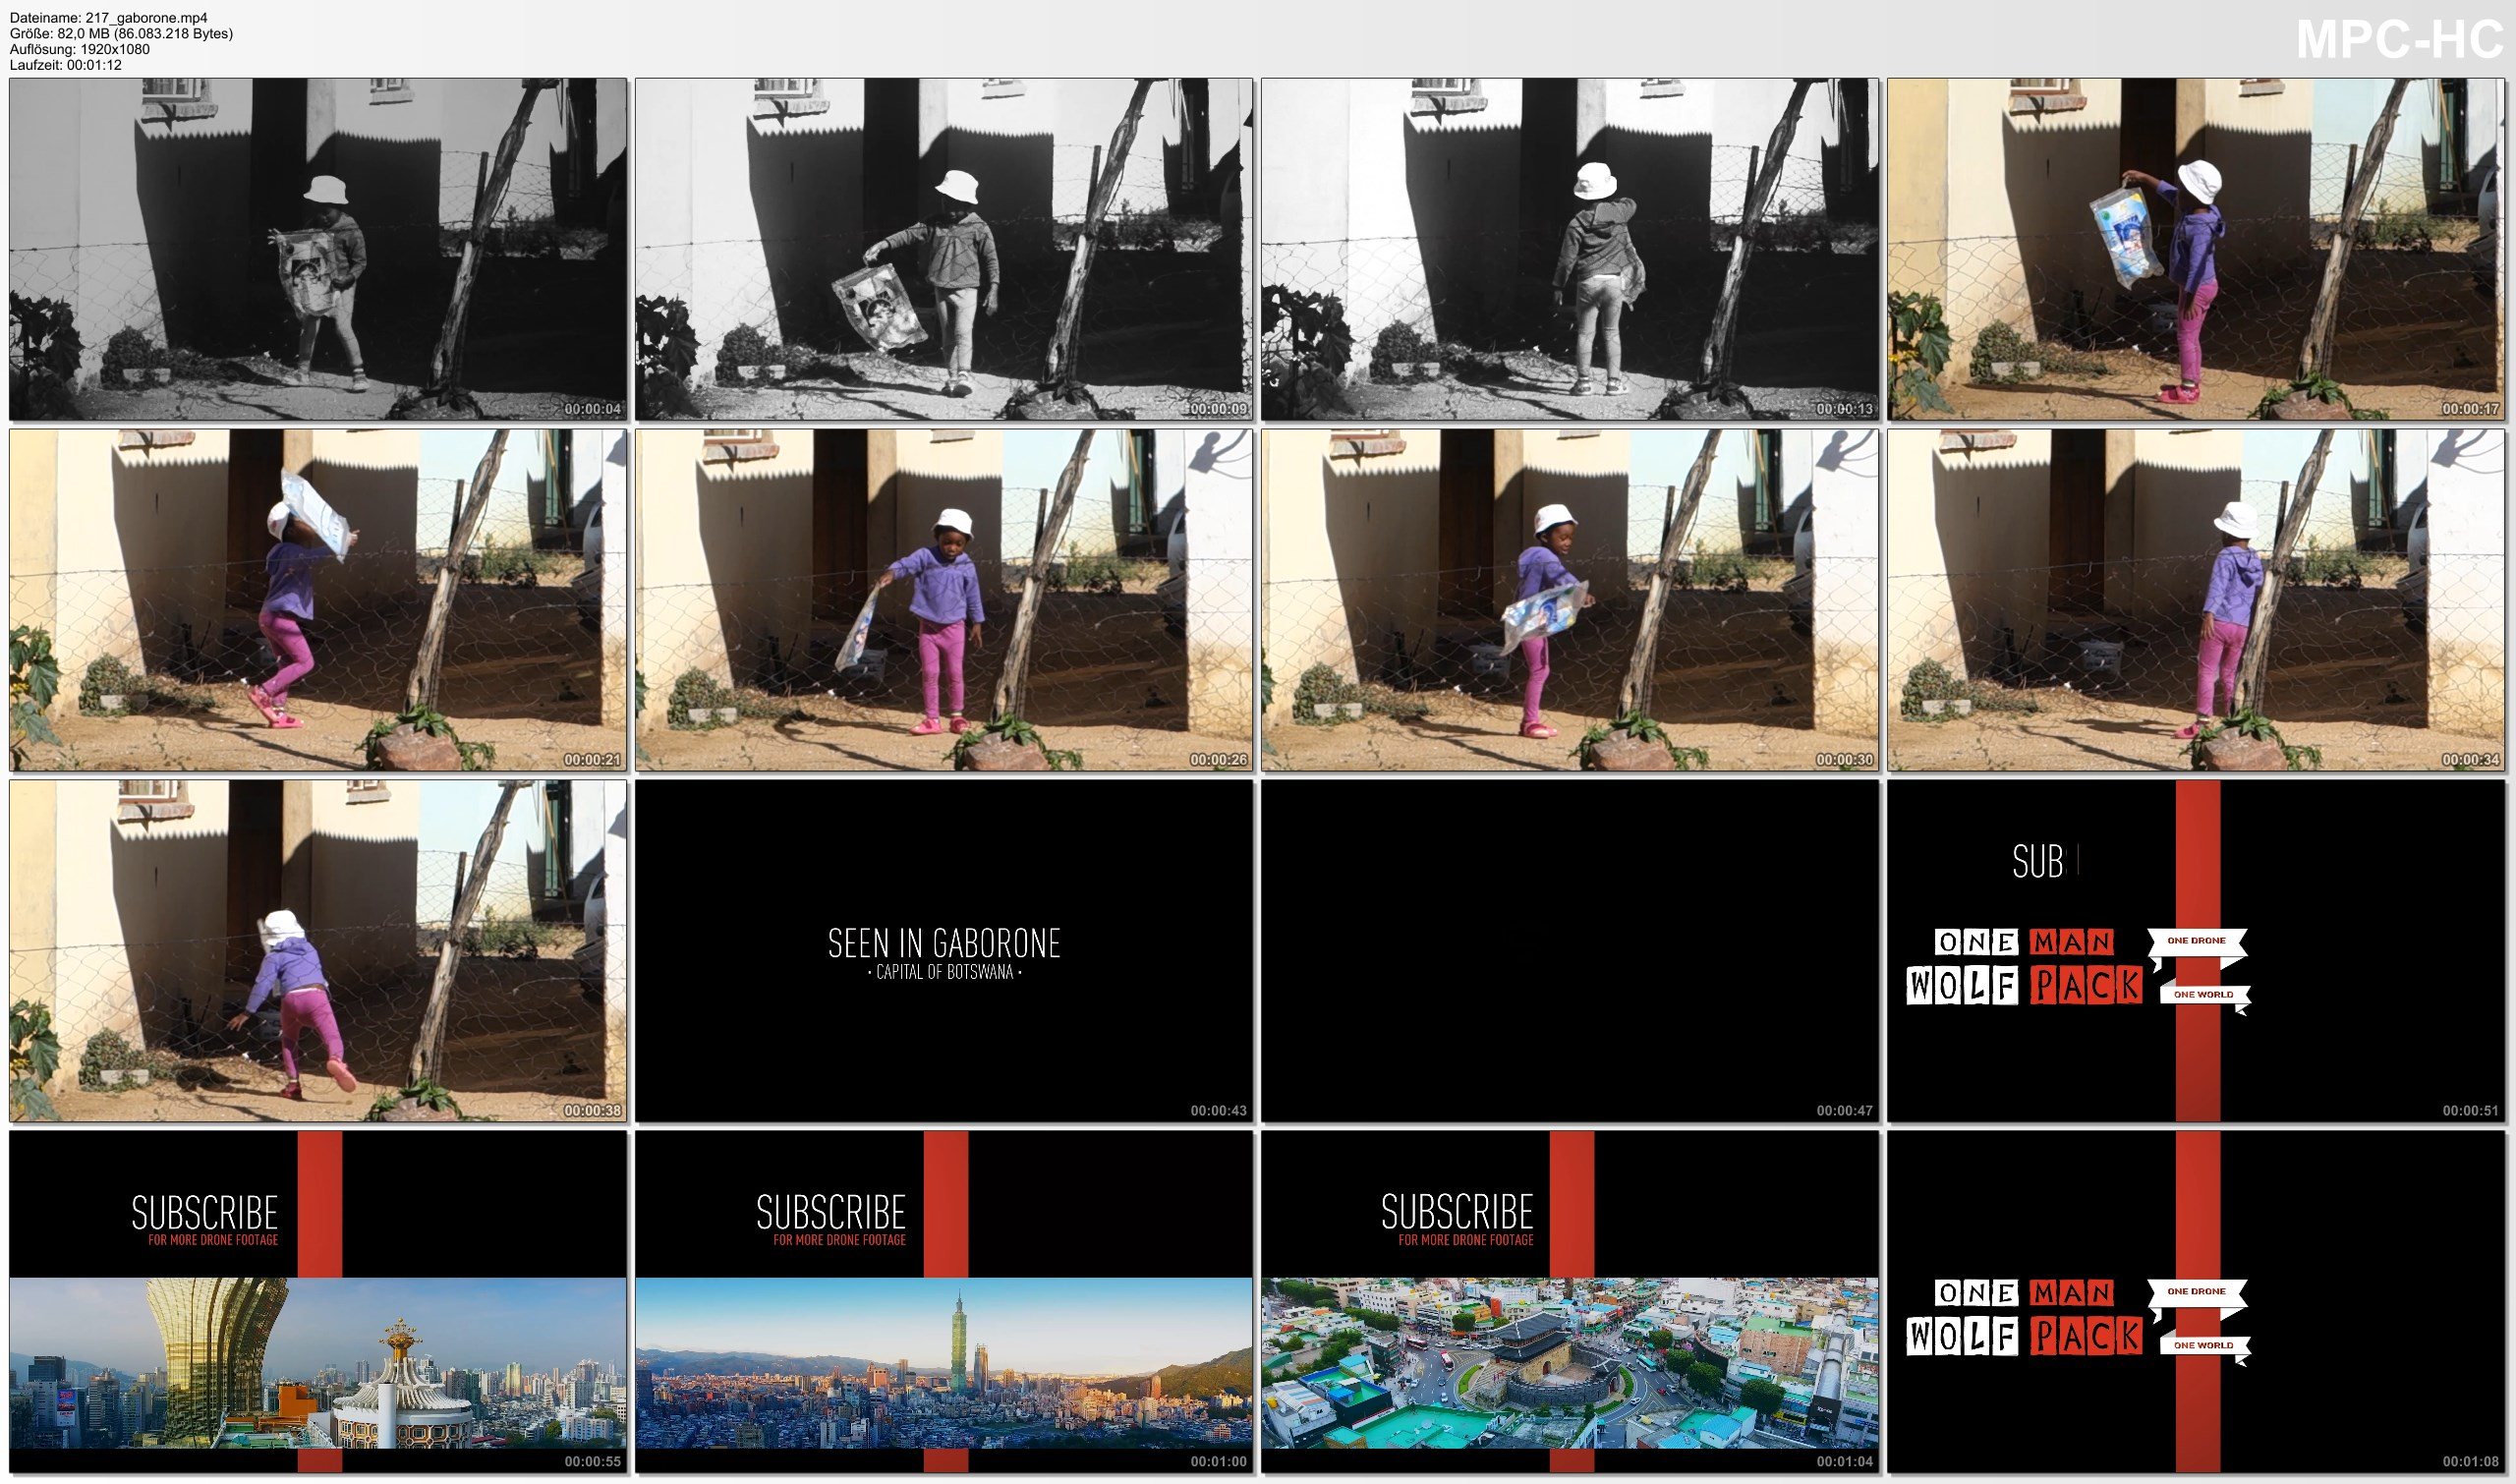 Pictures from Video 【1080p】Footage | Botswana Kid Playing Happily with a Plastic Bag ..: Seen in Gaborone *TRAVEL VIDEO*